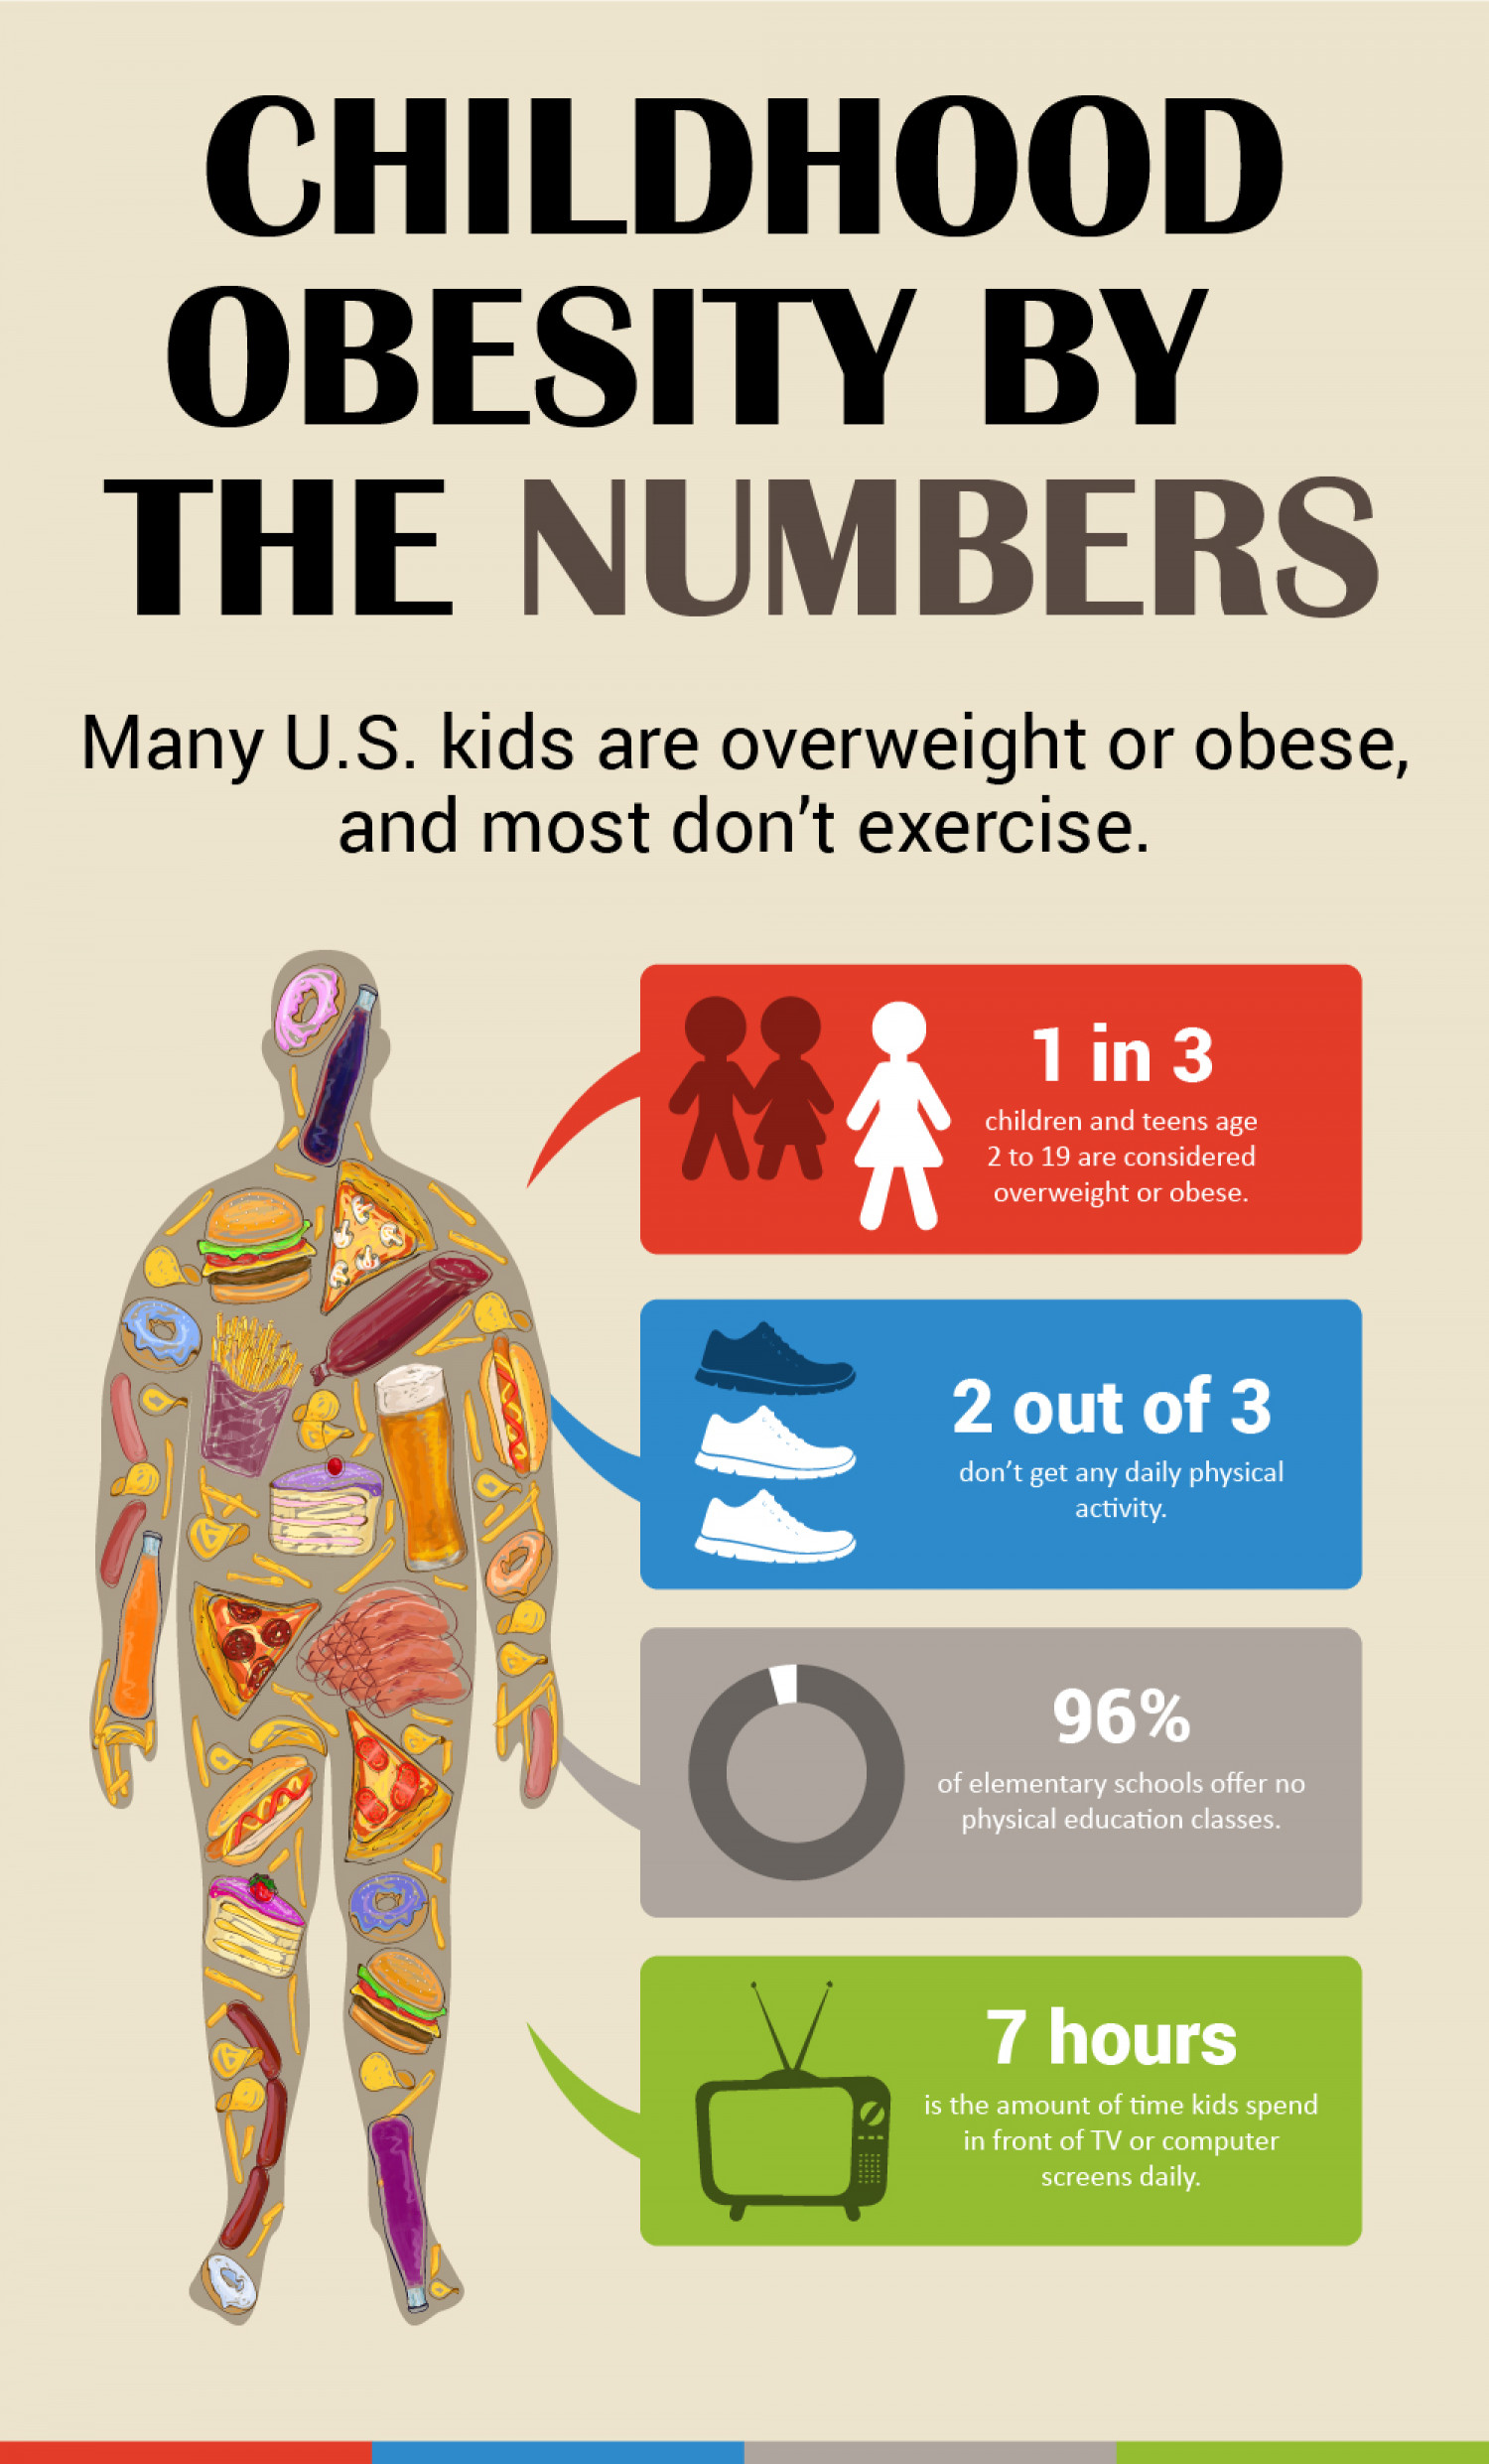 american children and teens is overweight Obesity is worsening among us kids, even the smallest children, a new study  finds more than 40 percent of teens are obese.